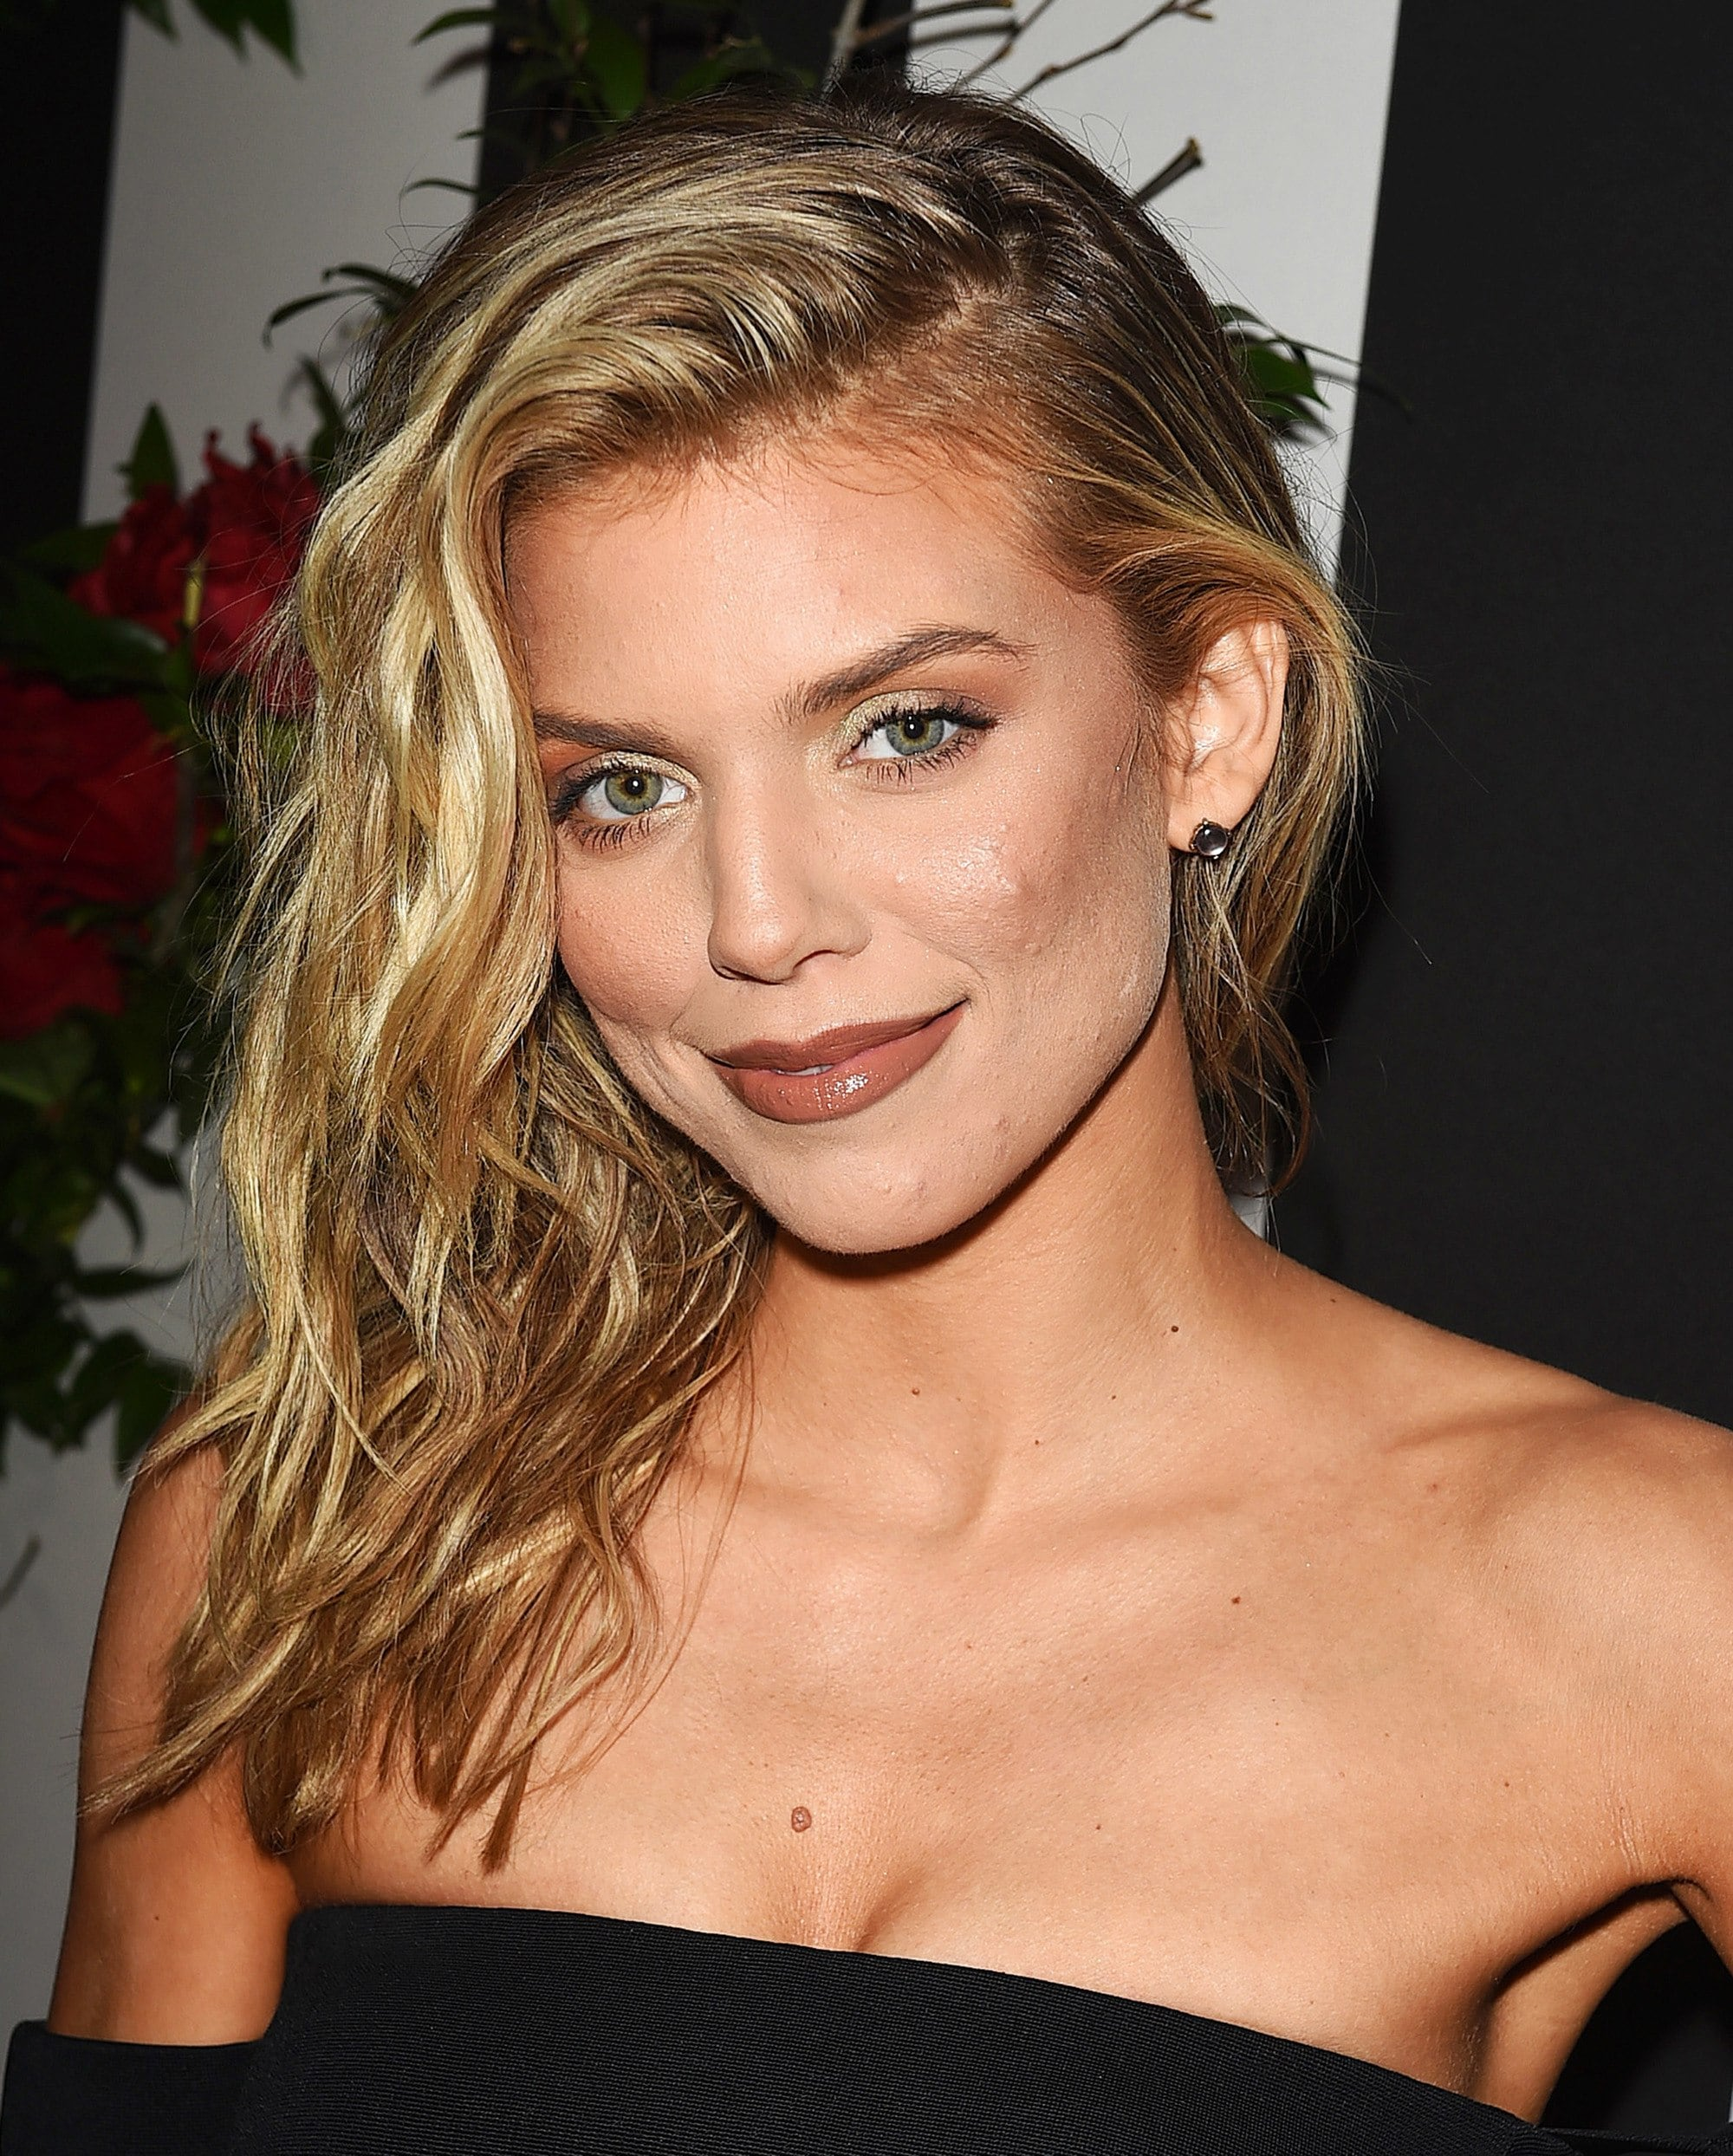 Curly hair hairstyles: AnnaLynne McCord tousled golden blonde wavy hair swept across one shoulder wearing a strapless black dress